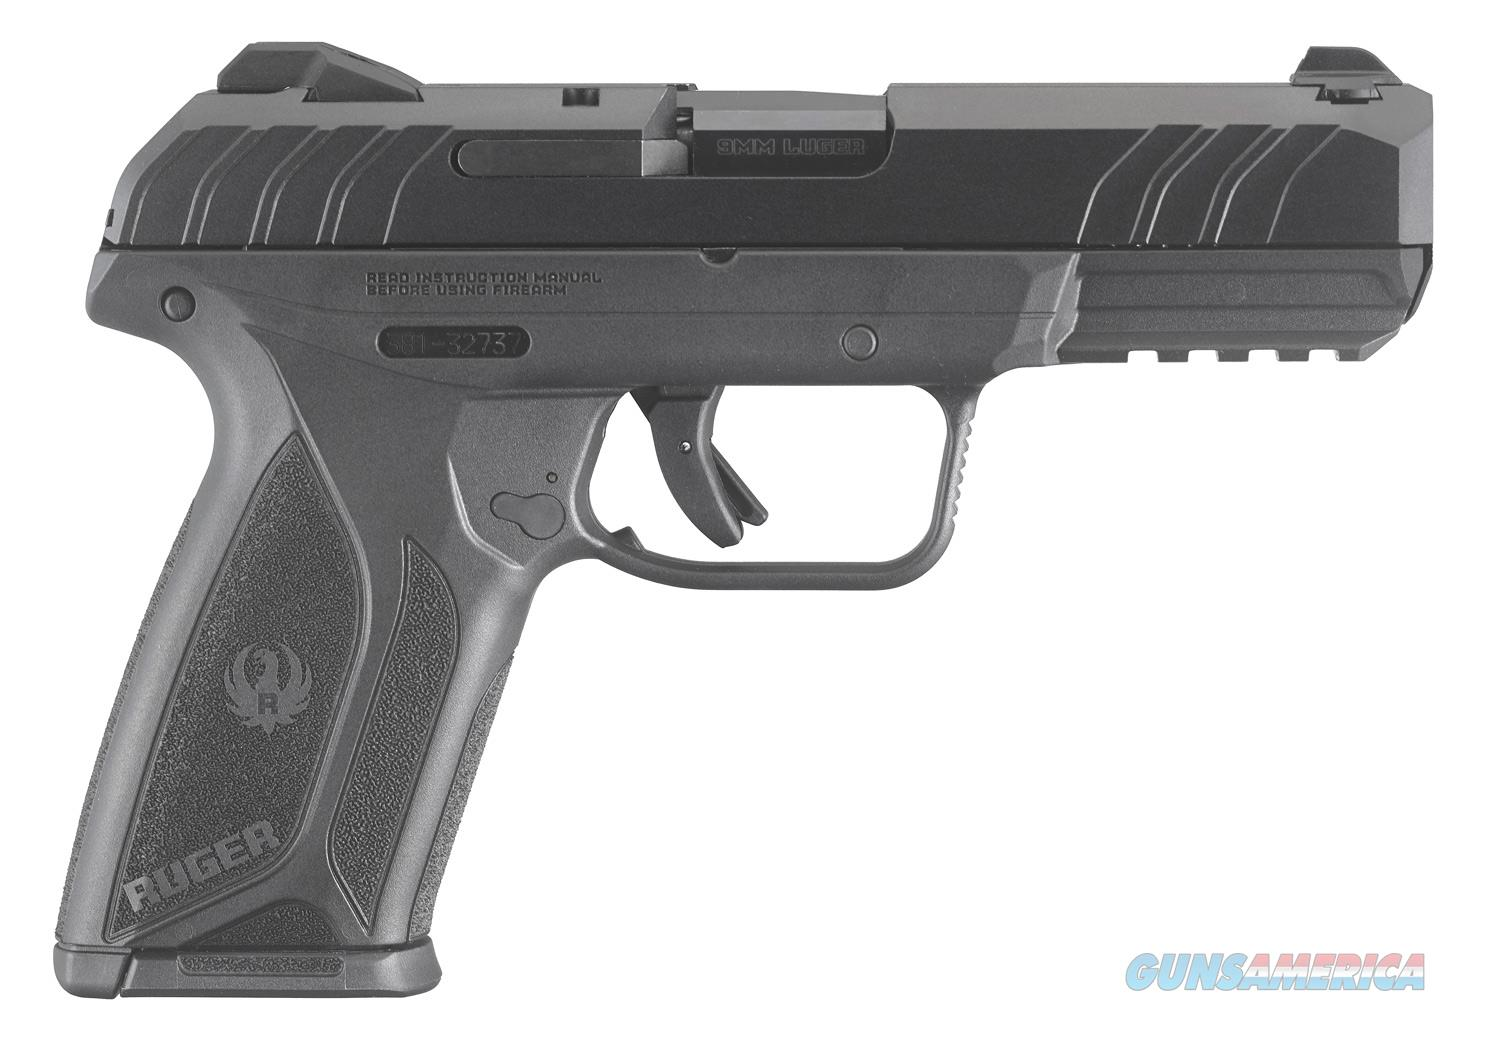 Ruger Security 9, Mfg# 3810, 9mm, 15+1 Rds, NIB  Guns > Pistols > Ruger Semi-Auto Pistols > Security 9